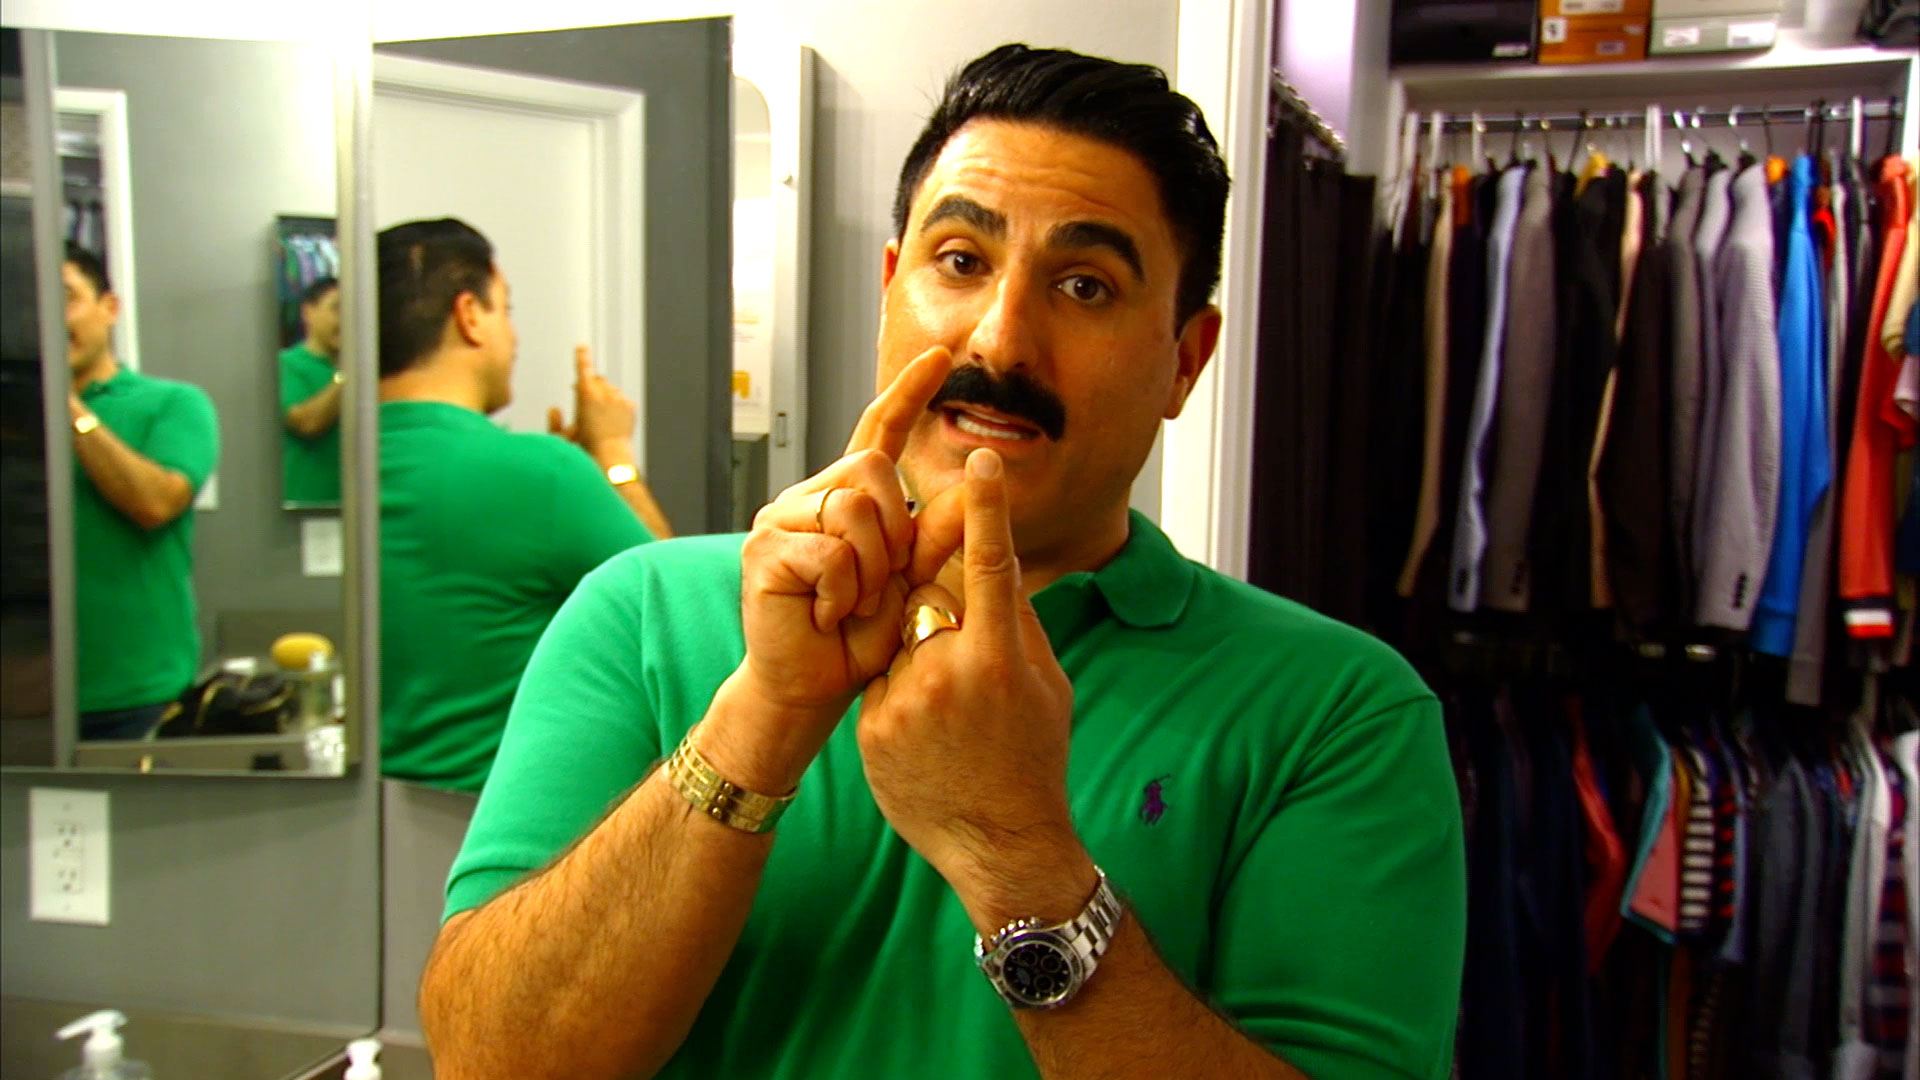 Shahs' Guide to Grooming